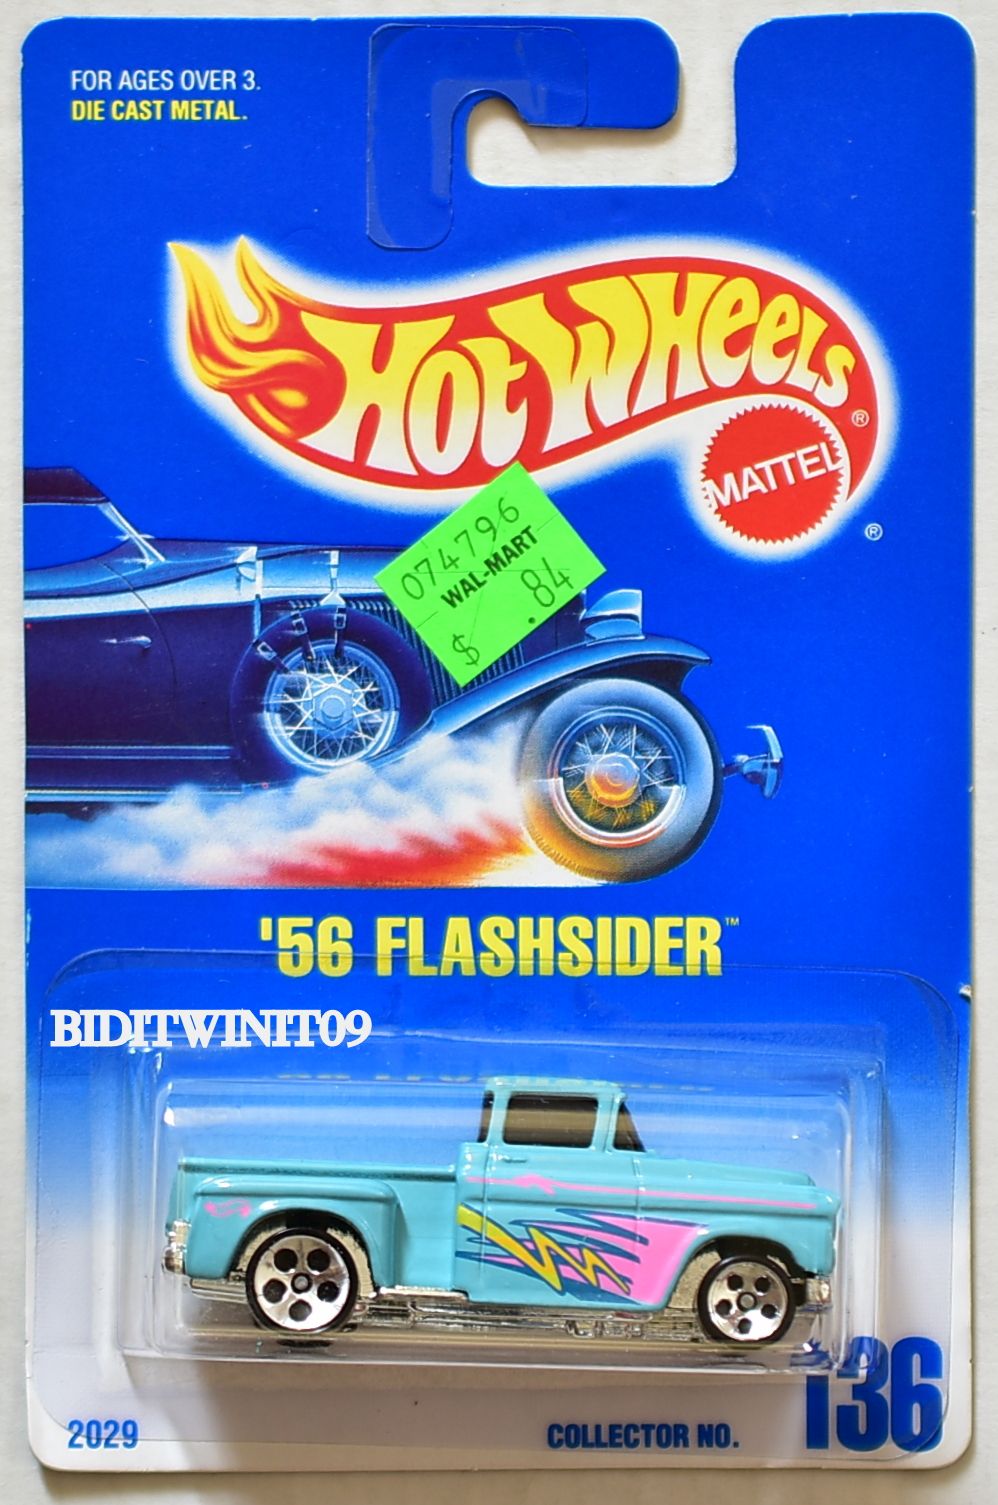 HOT WHEELS 1990 BLUE CARD '56 FLASHSIDER #136 W/ 5 HOLE WHEELS 07